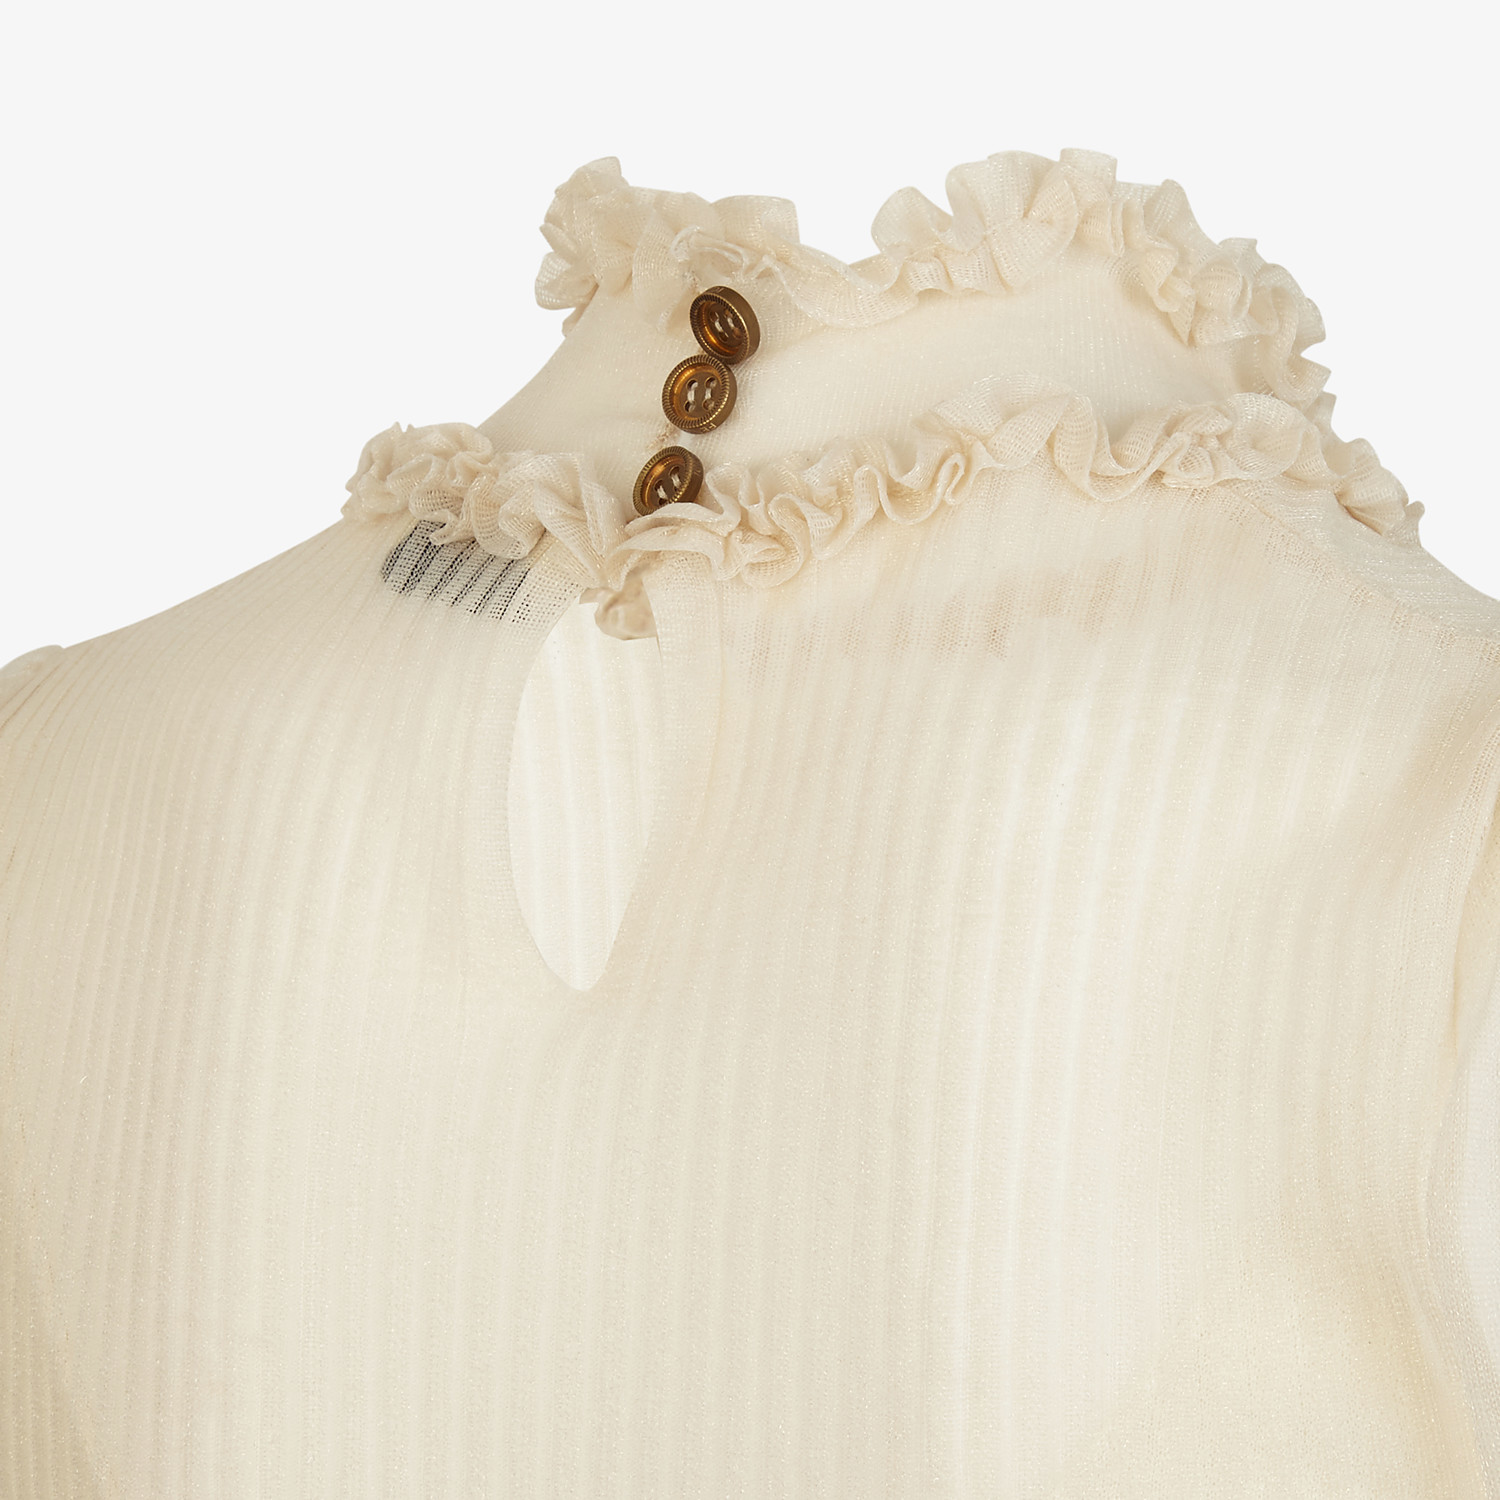 FENDI SWEATER - Beige nylon sweater - view 3 detail